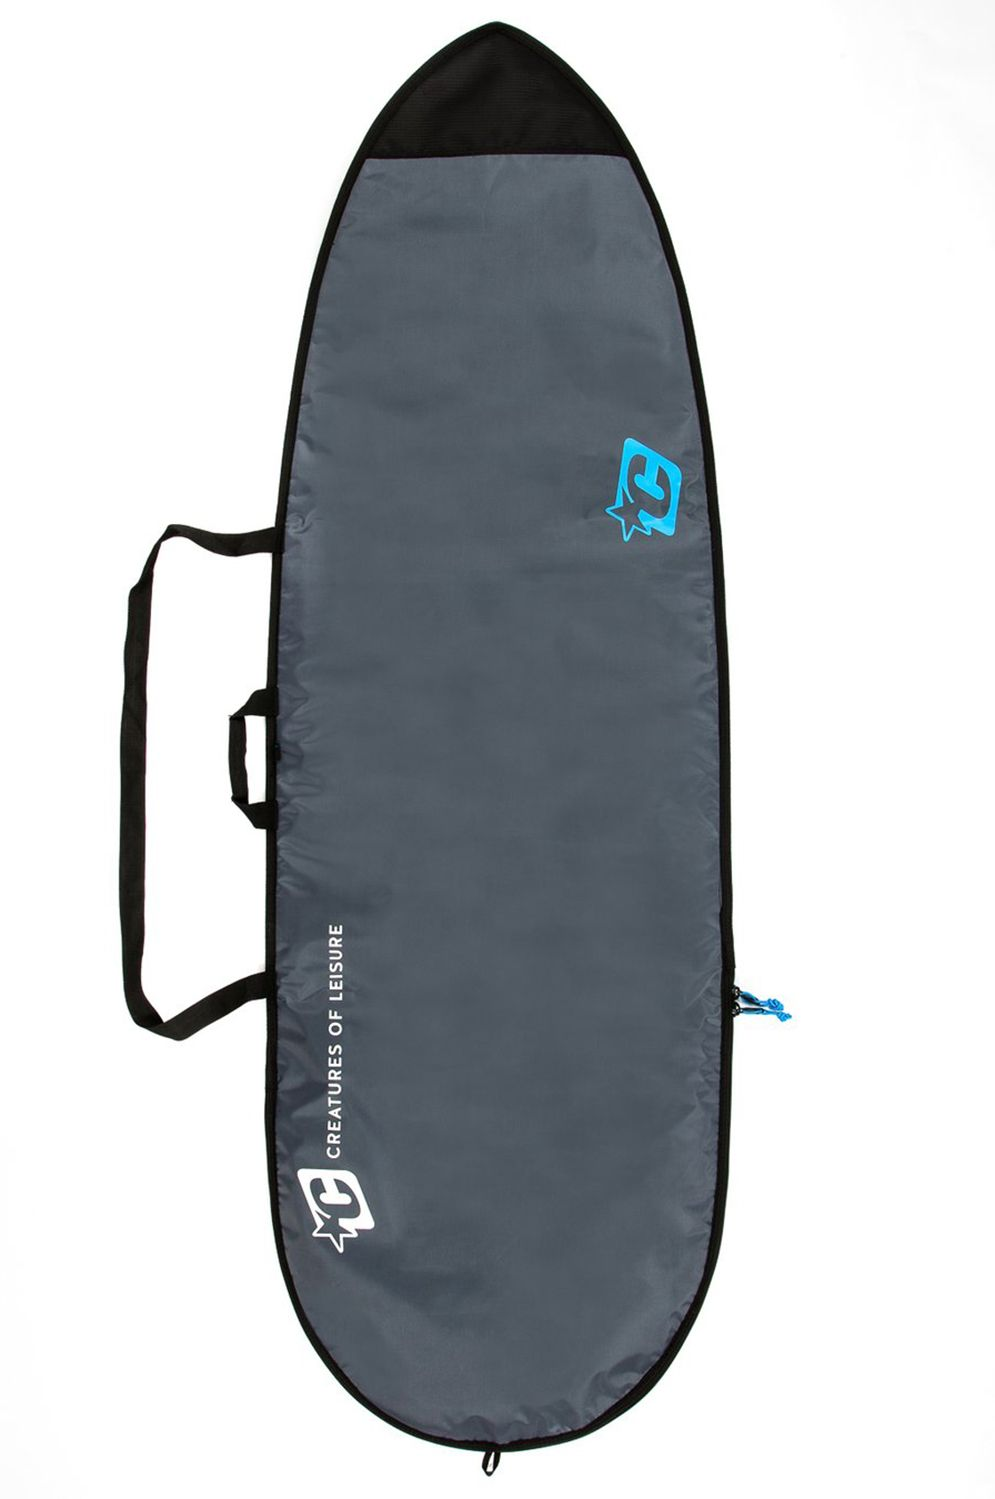 Creatures Boardbag 6'3 FISH LITE Charcoal Cyan